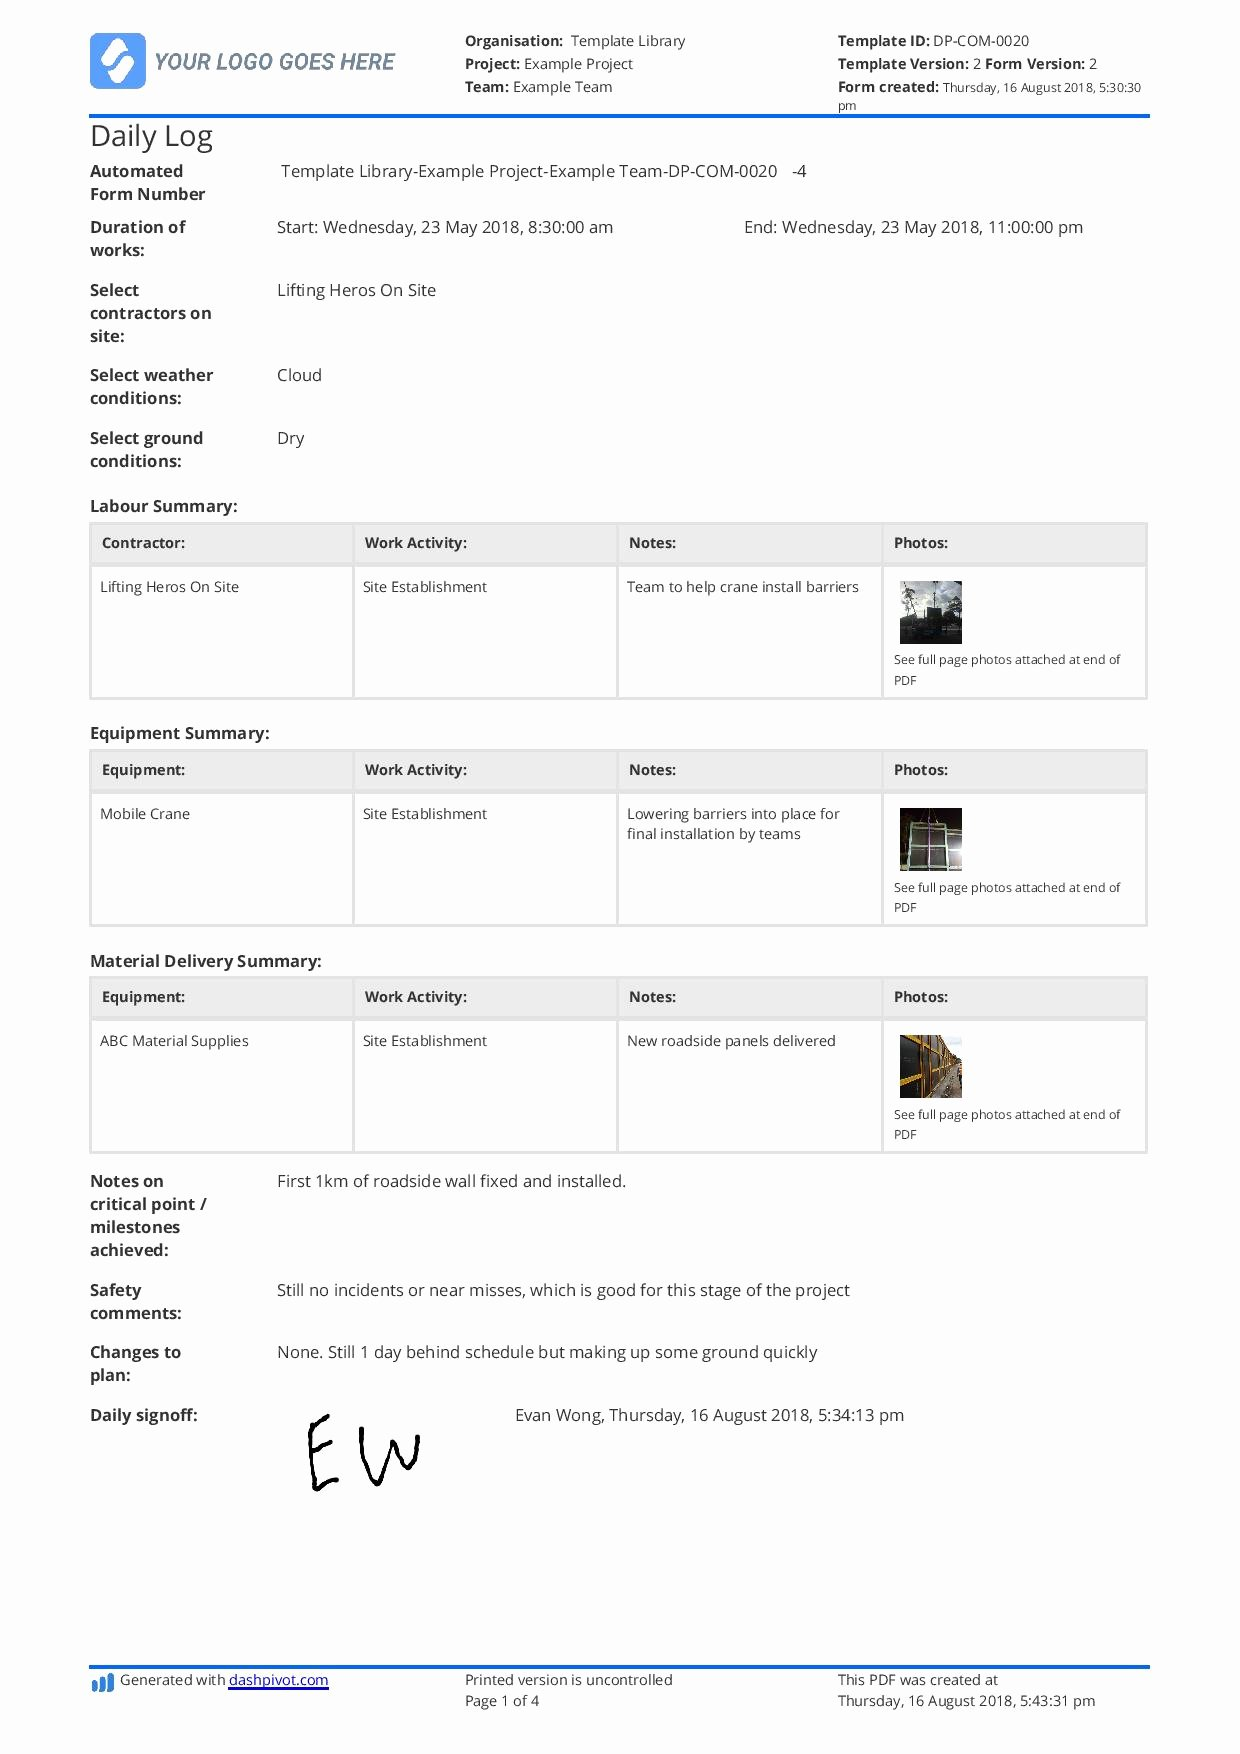 Daily Log Template Excel Best Of Free Daily Construction Log Template Better Than Excel